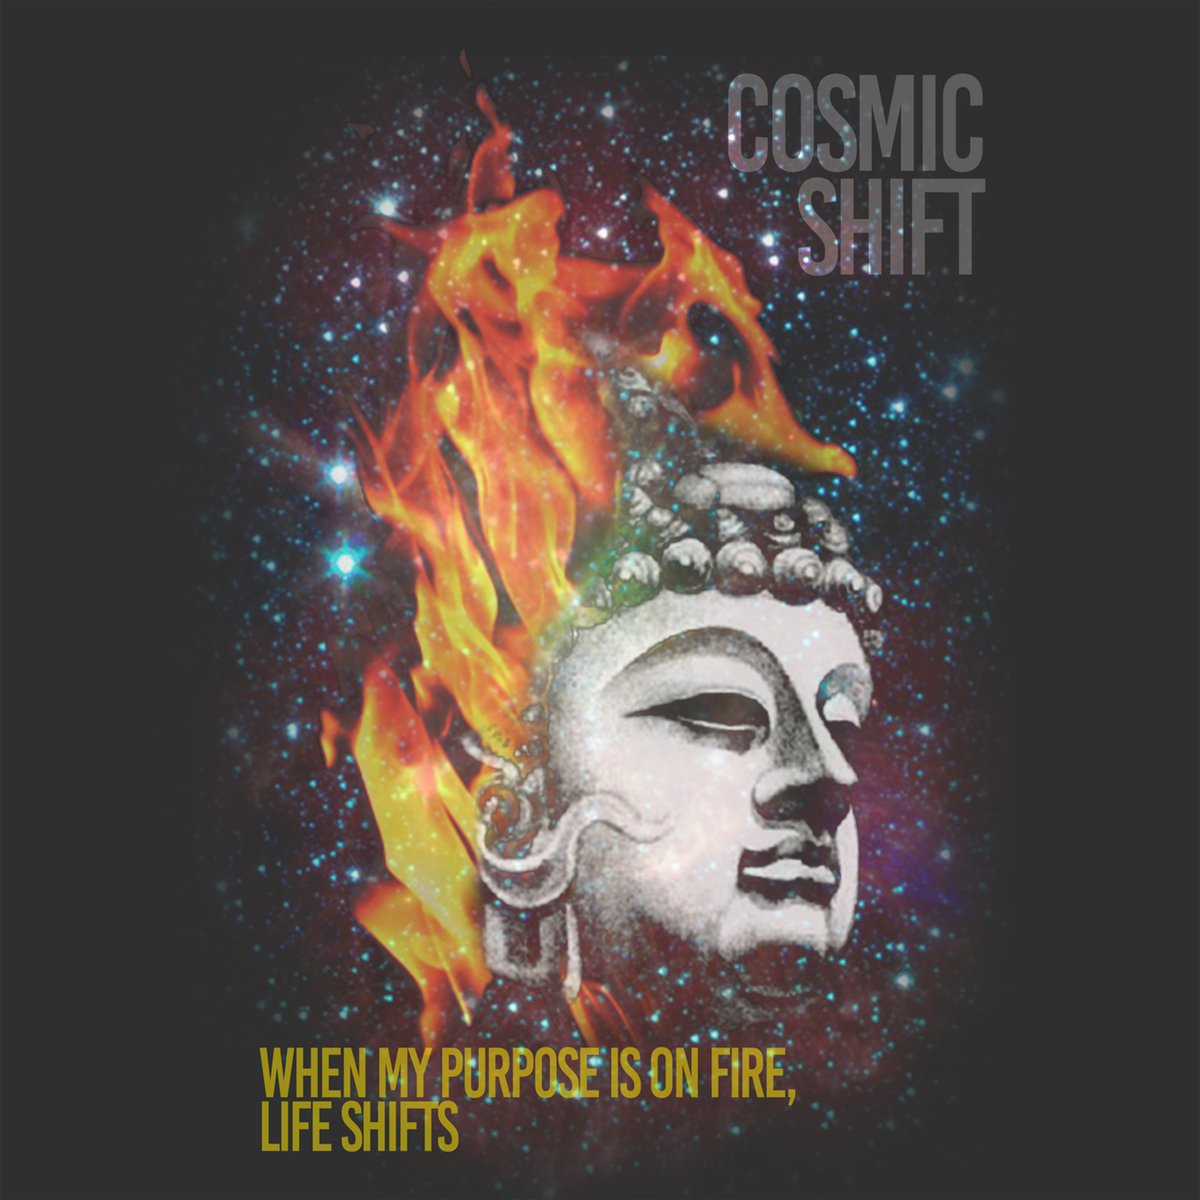 Cosmic Shift t shirt design